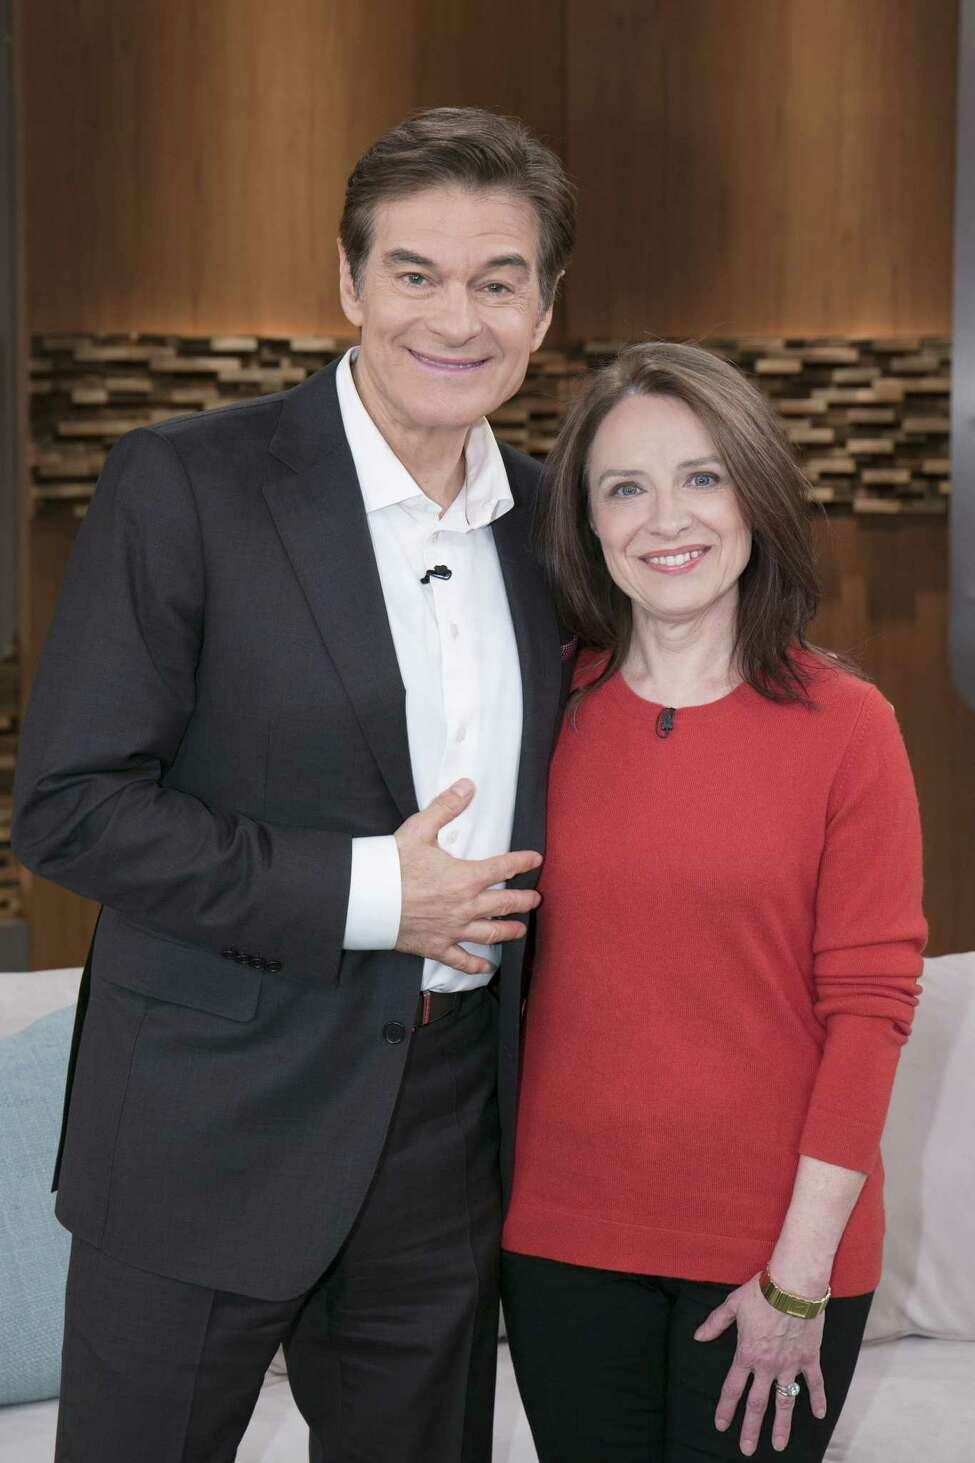 Dr. Oz with Sally Temple, scientific director and co-founder of the Neural Stem Cell Institute. (Courtesy Sony Pictures Television)